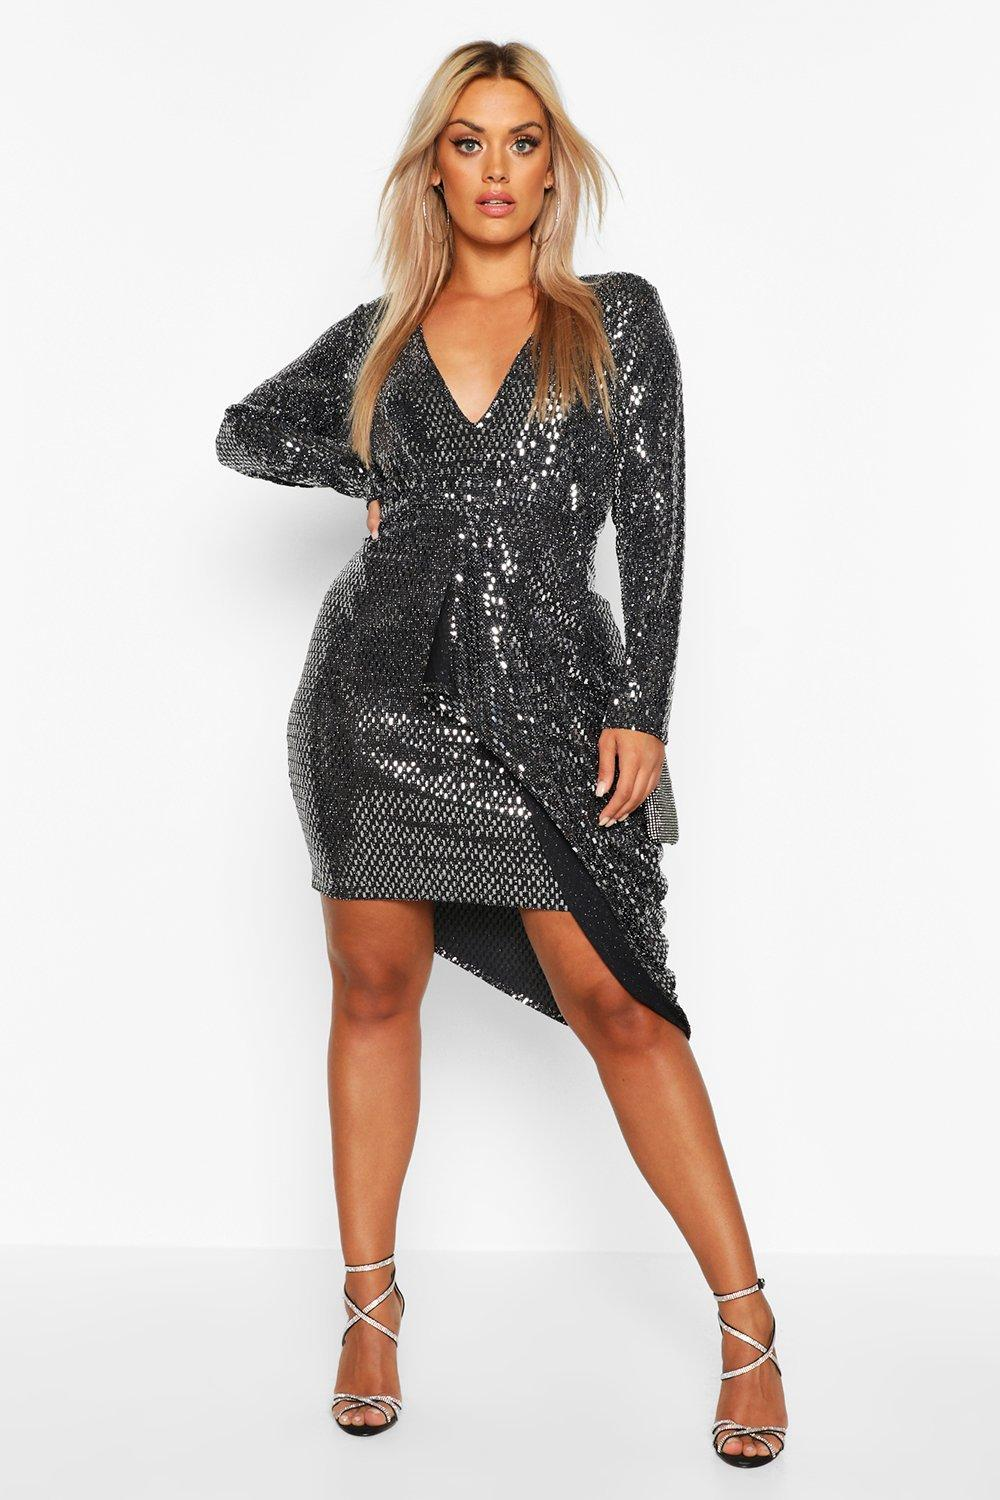 Vintage Rompers, Playsuits | Retro, Pin Up, Rockabilly Playsuits Womens Plus Sequin Wrap romper - grey - 14 $22.00 AT vintagedancer.com